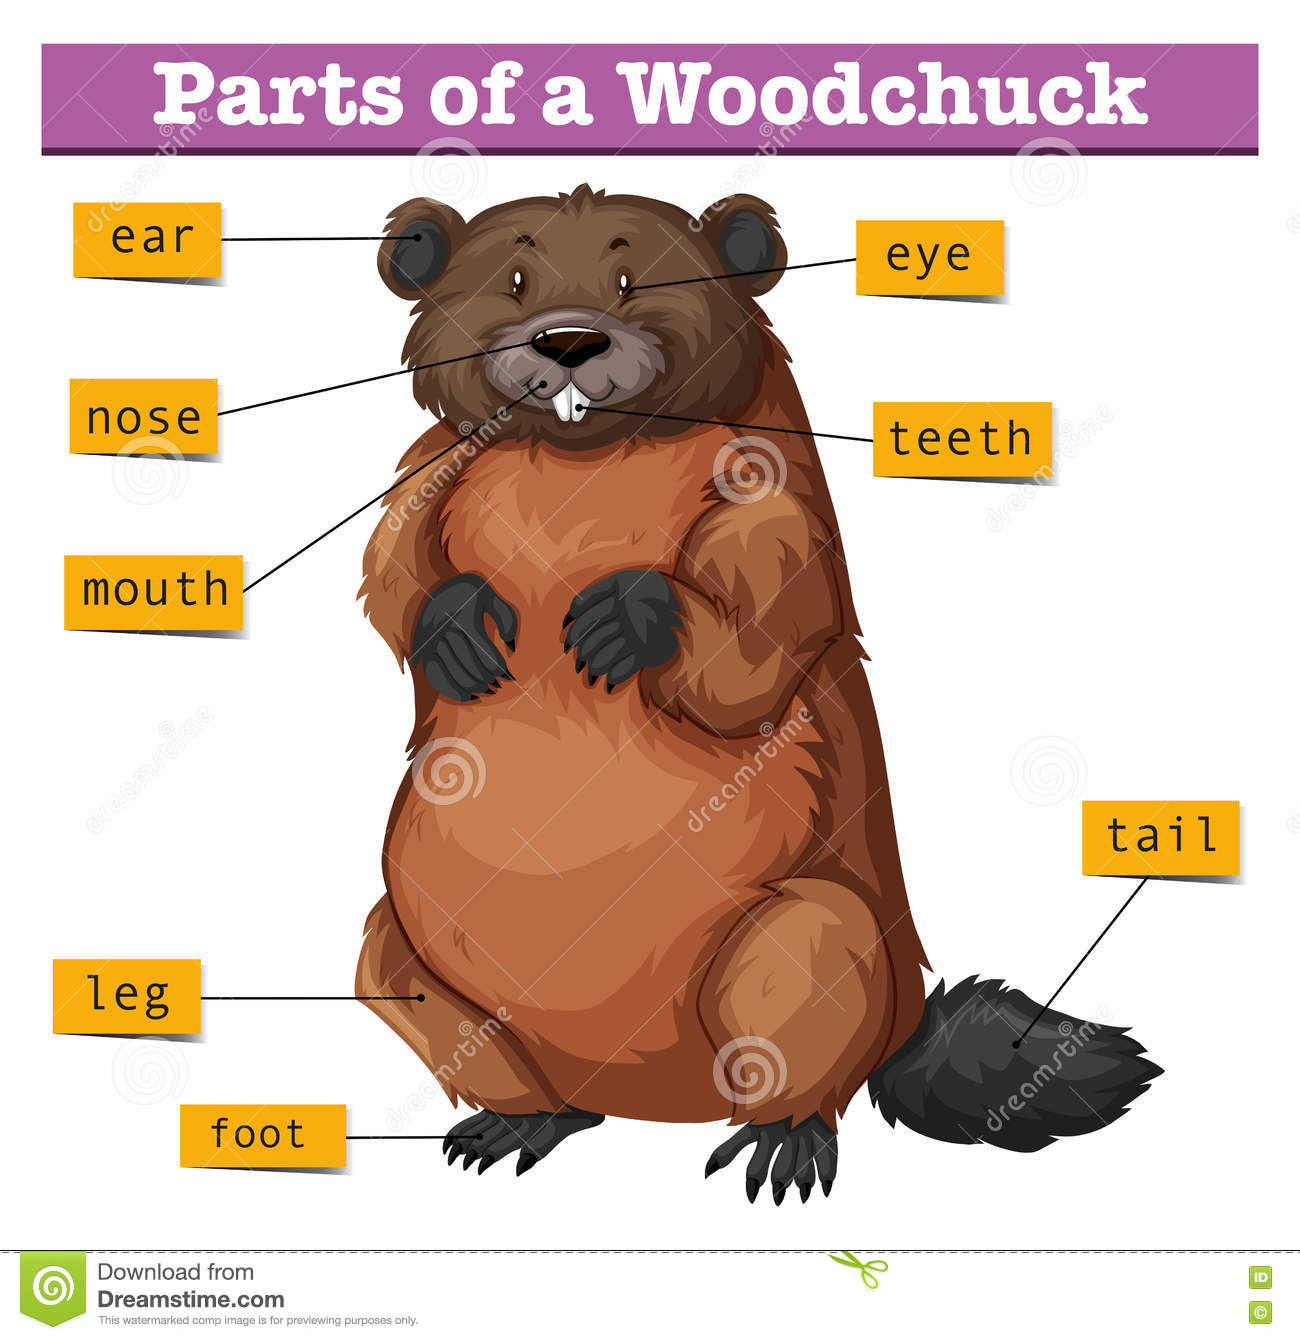 beaver skeleton diagram electrical wiring for water pump motor set showing parts of woodchuck stock vector